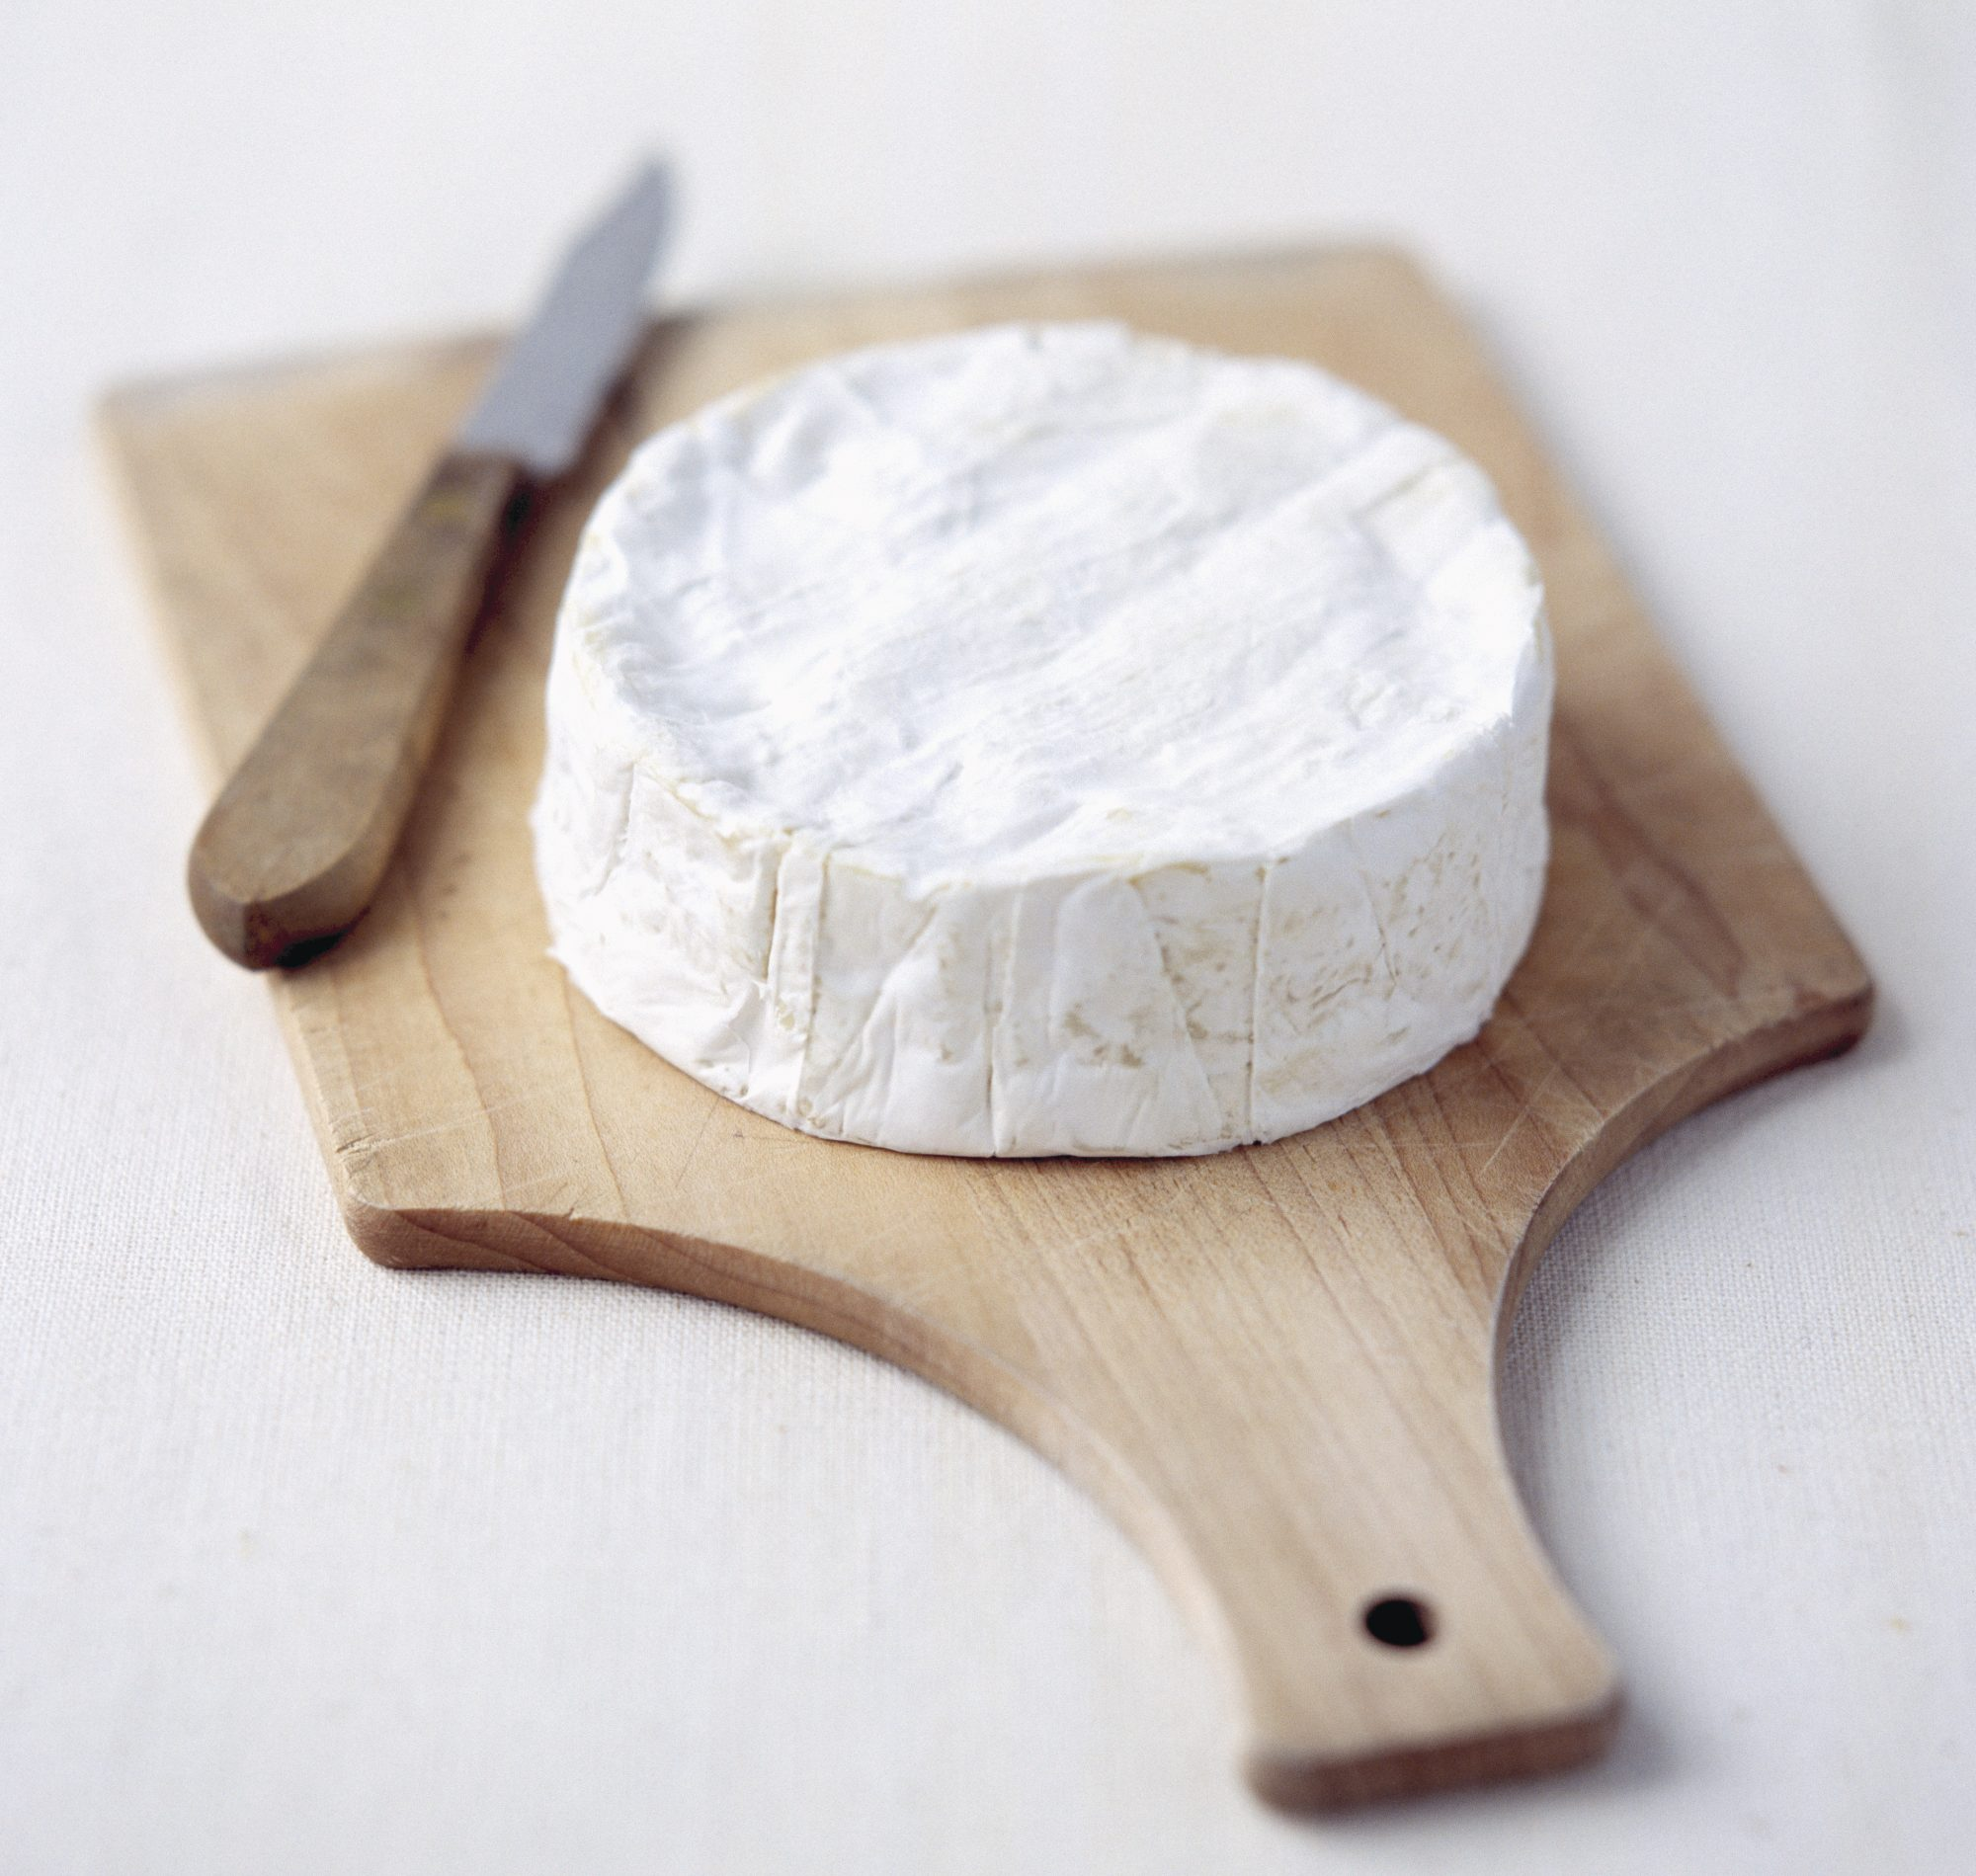 wheel of brie cheese on wooden board